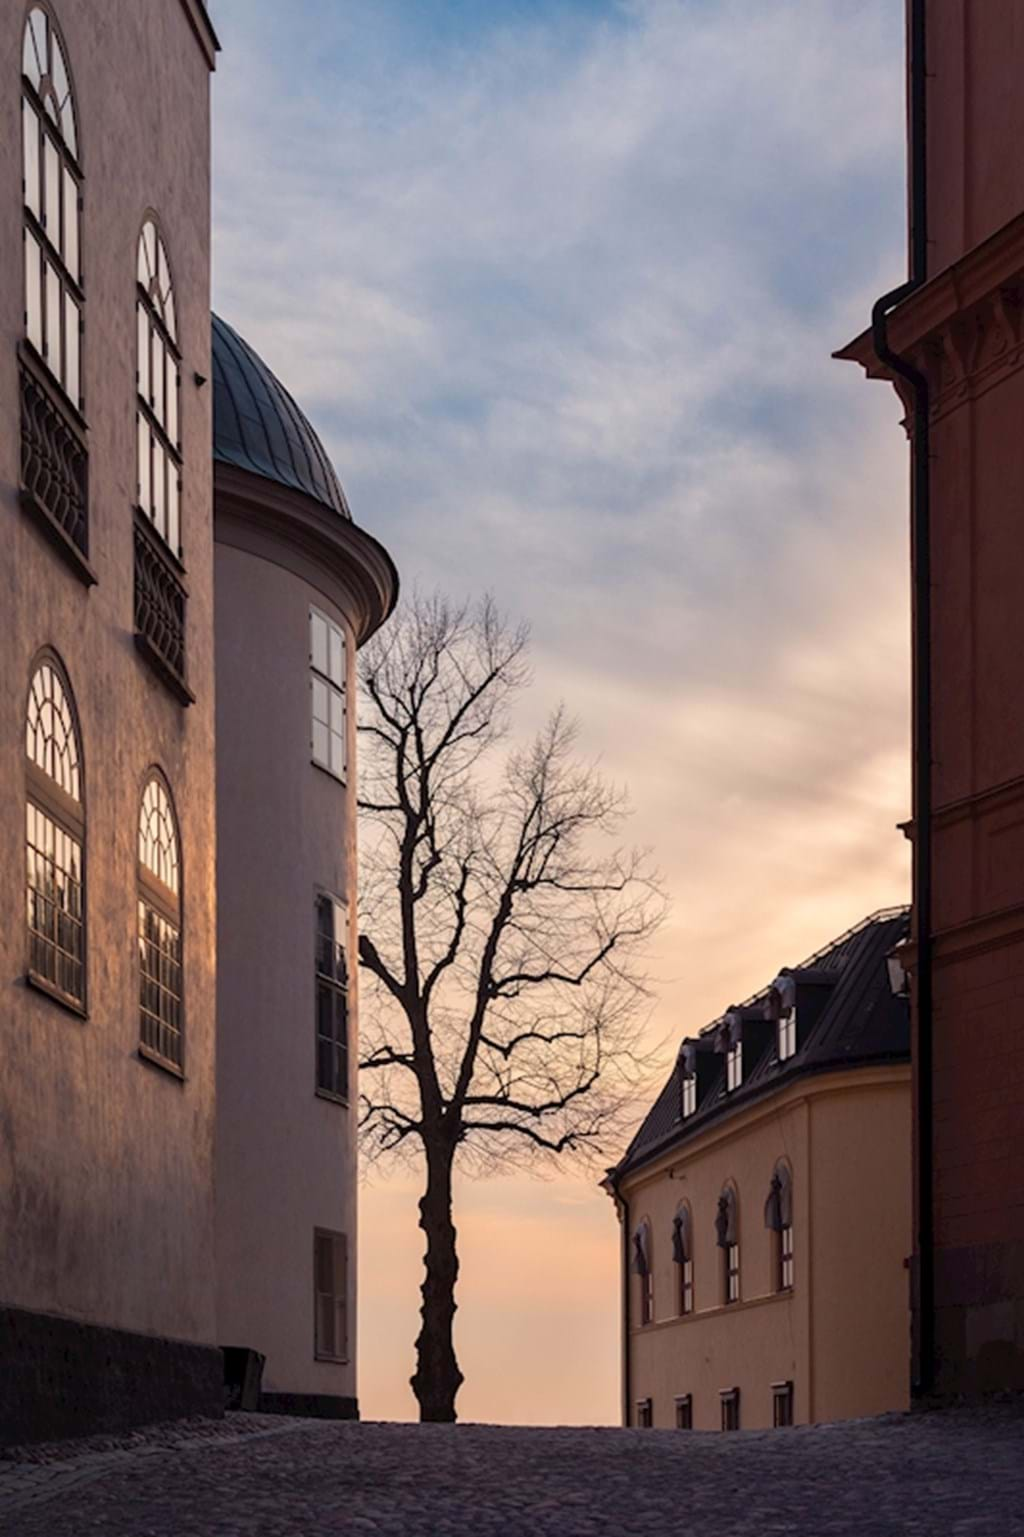 Poster: Sunset and tree i old town - Digital